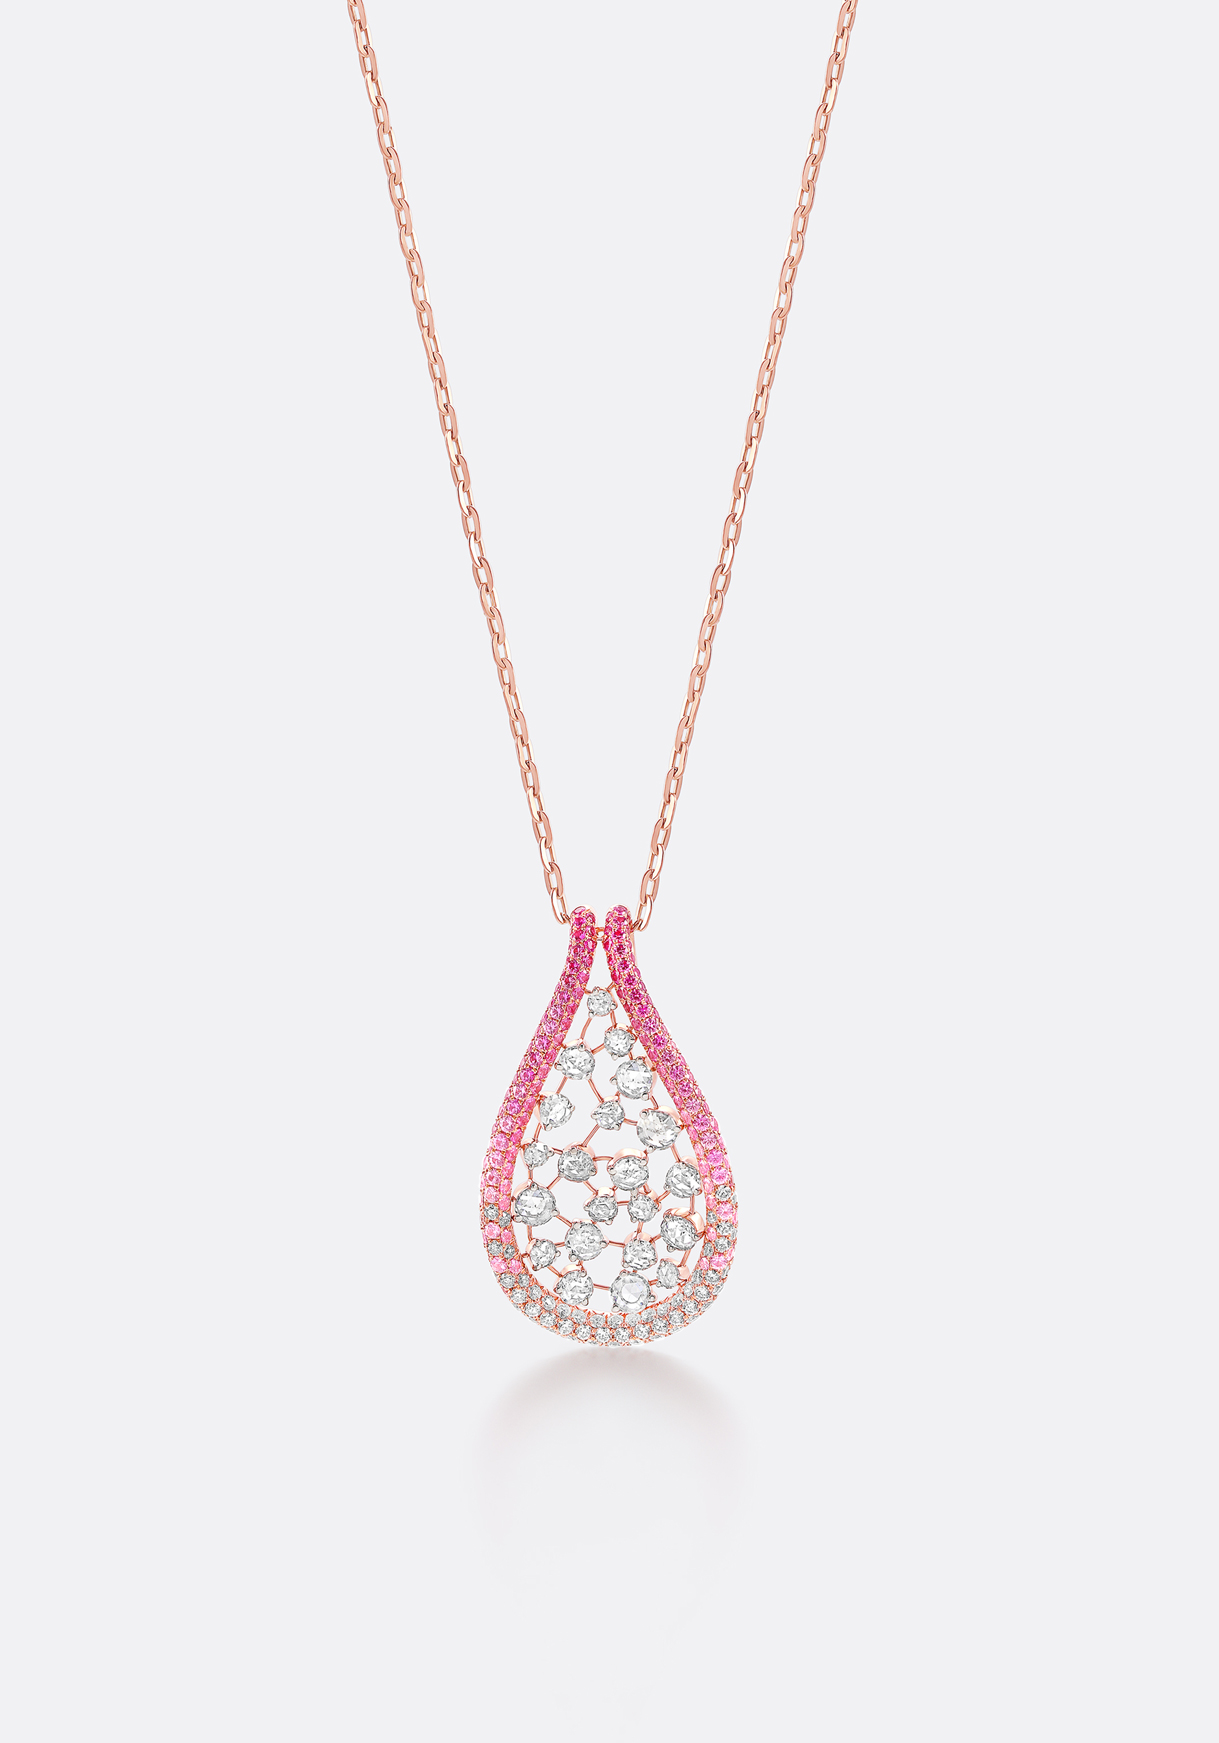 Pendant - interlinked, sparkling rose-cut diamonds reminiscent of dew drops.